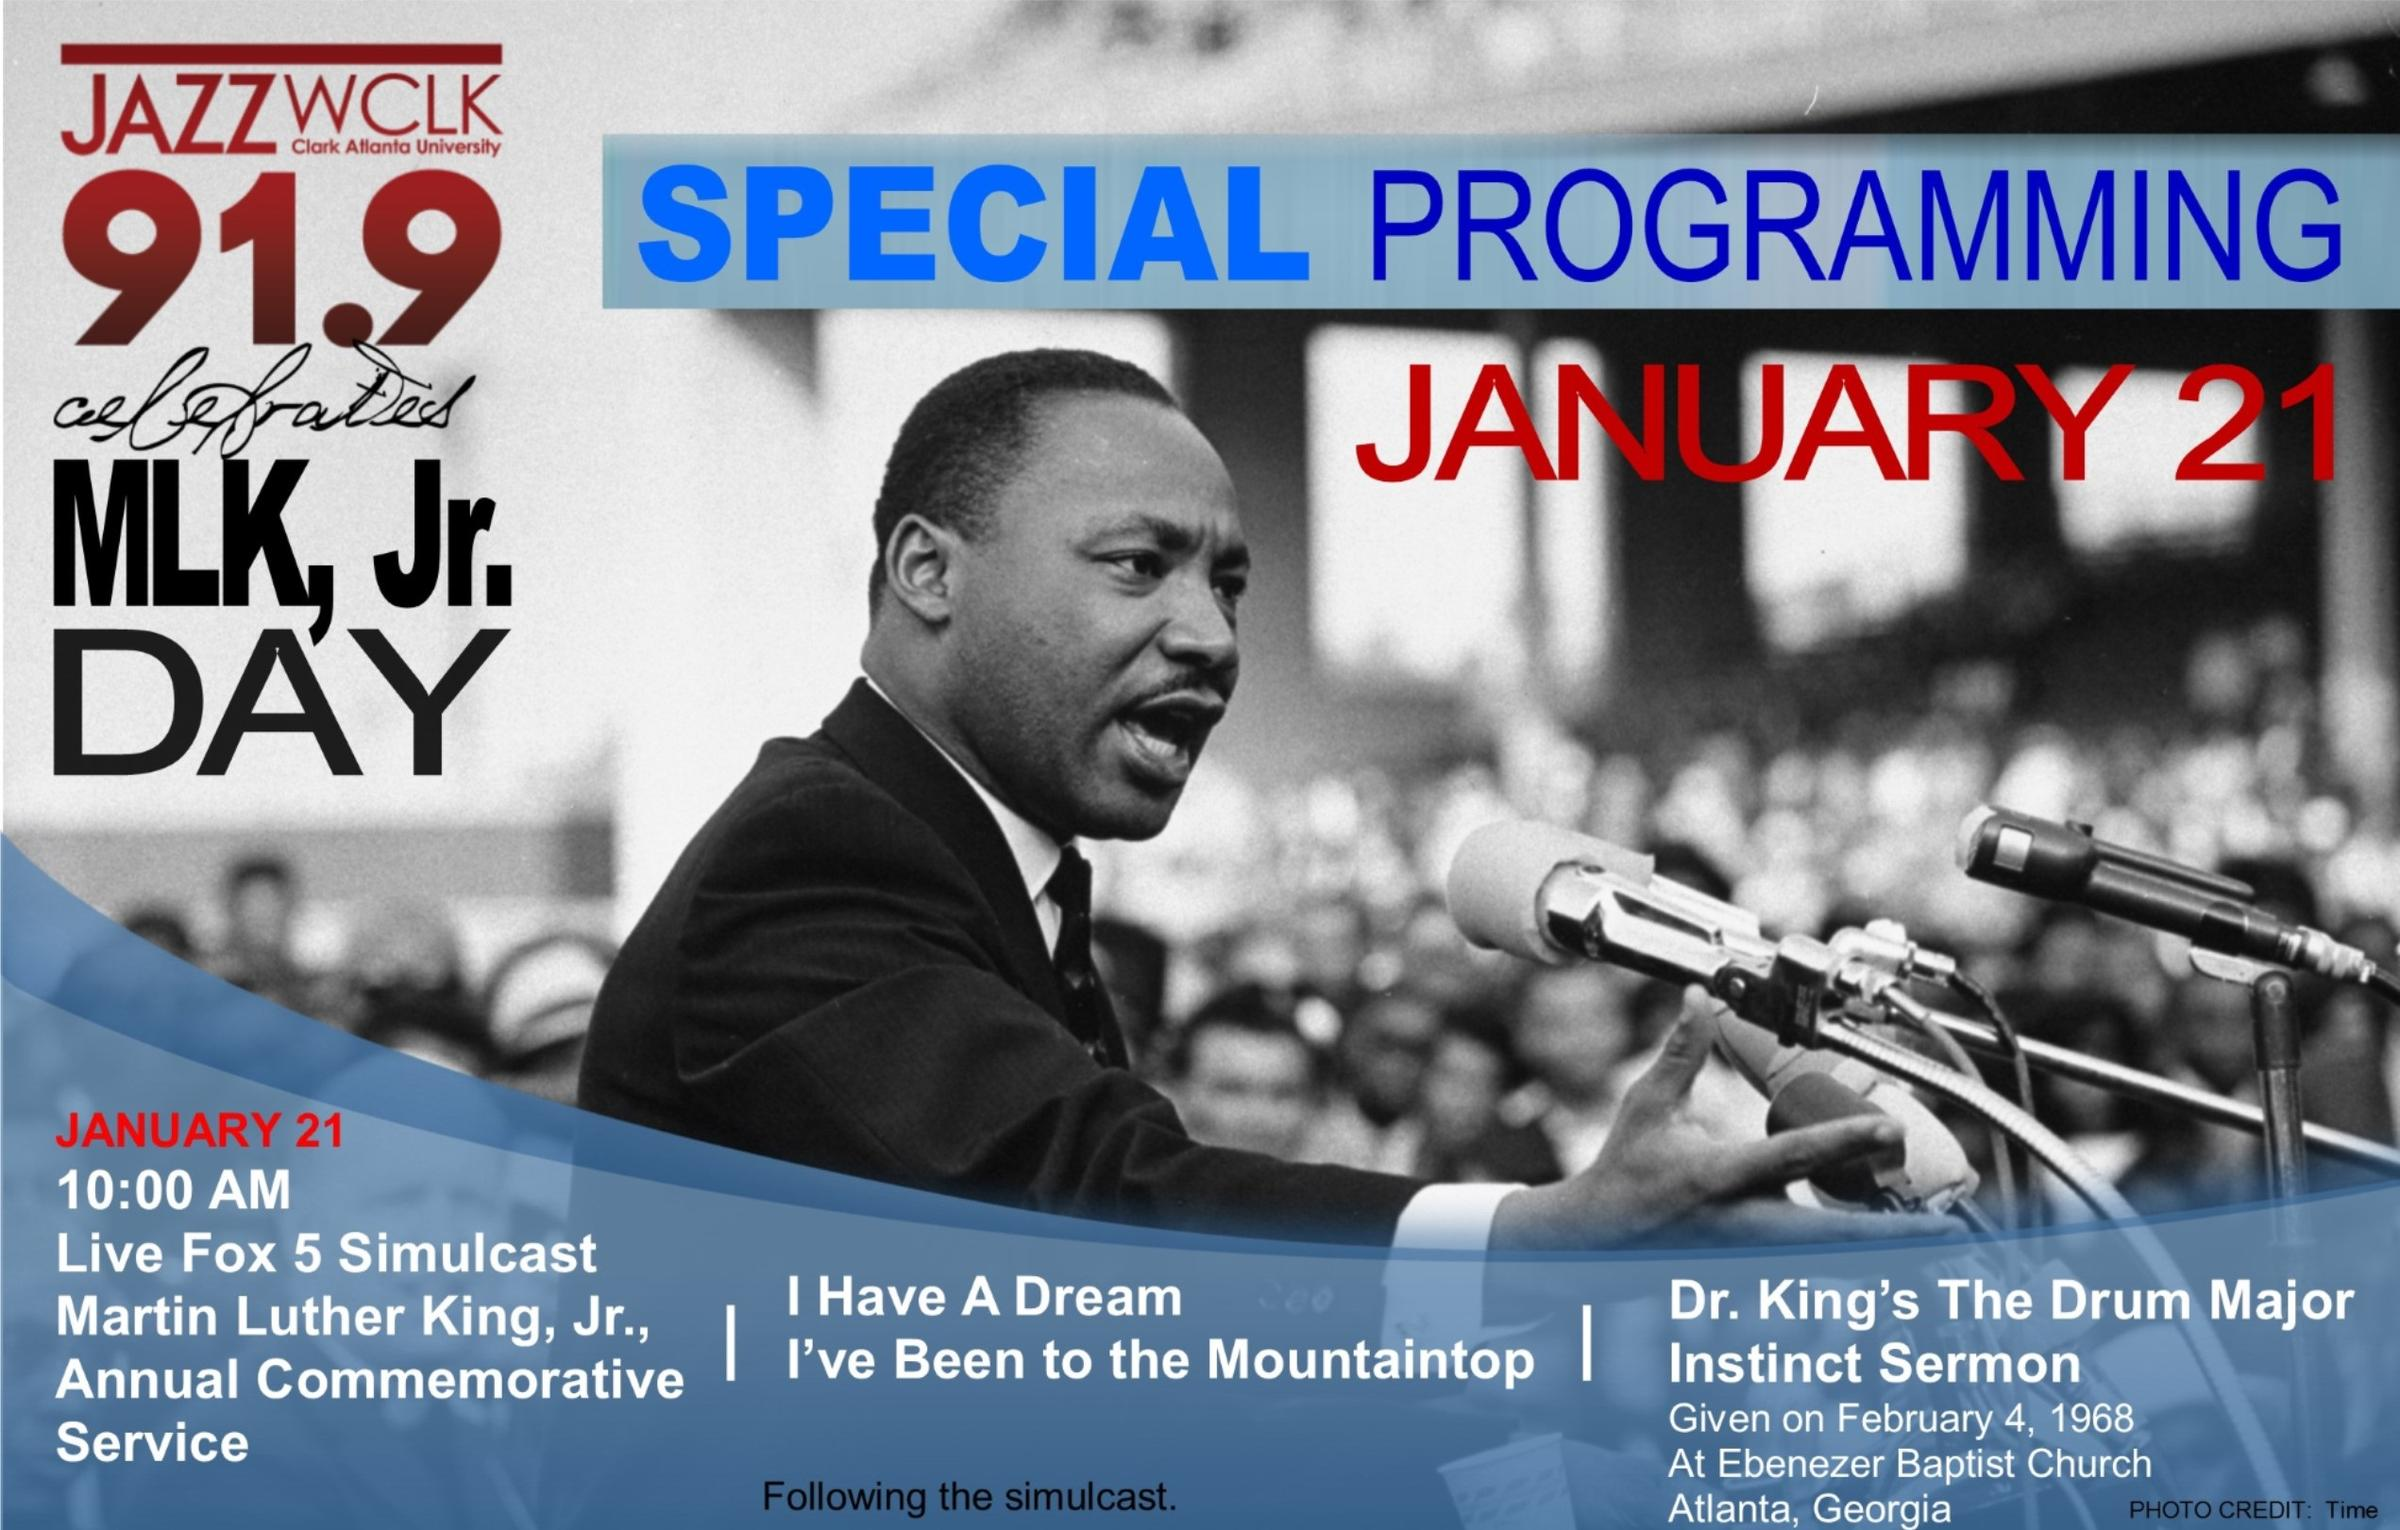 Monday January 21 Join Wclk For Simulcast Of Fox Five S Mlk